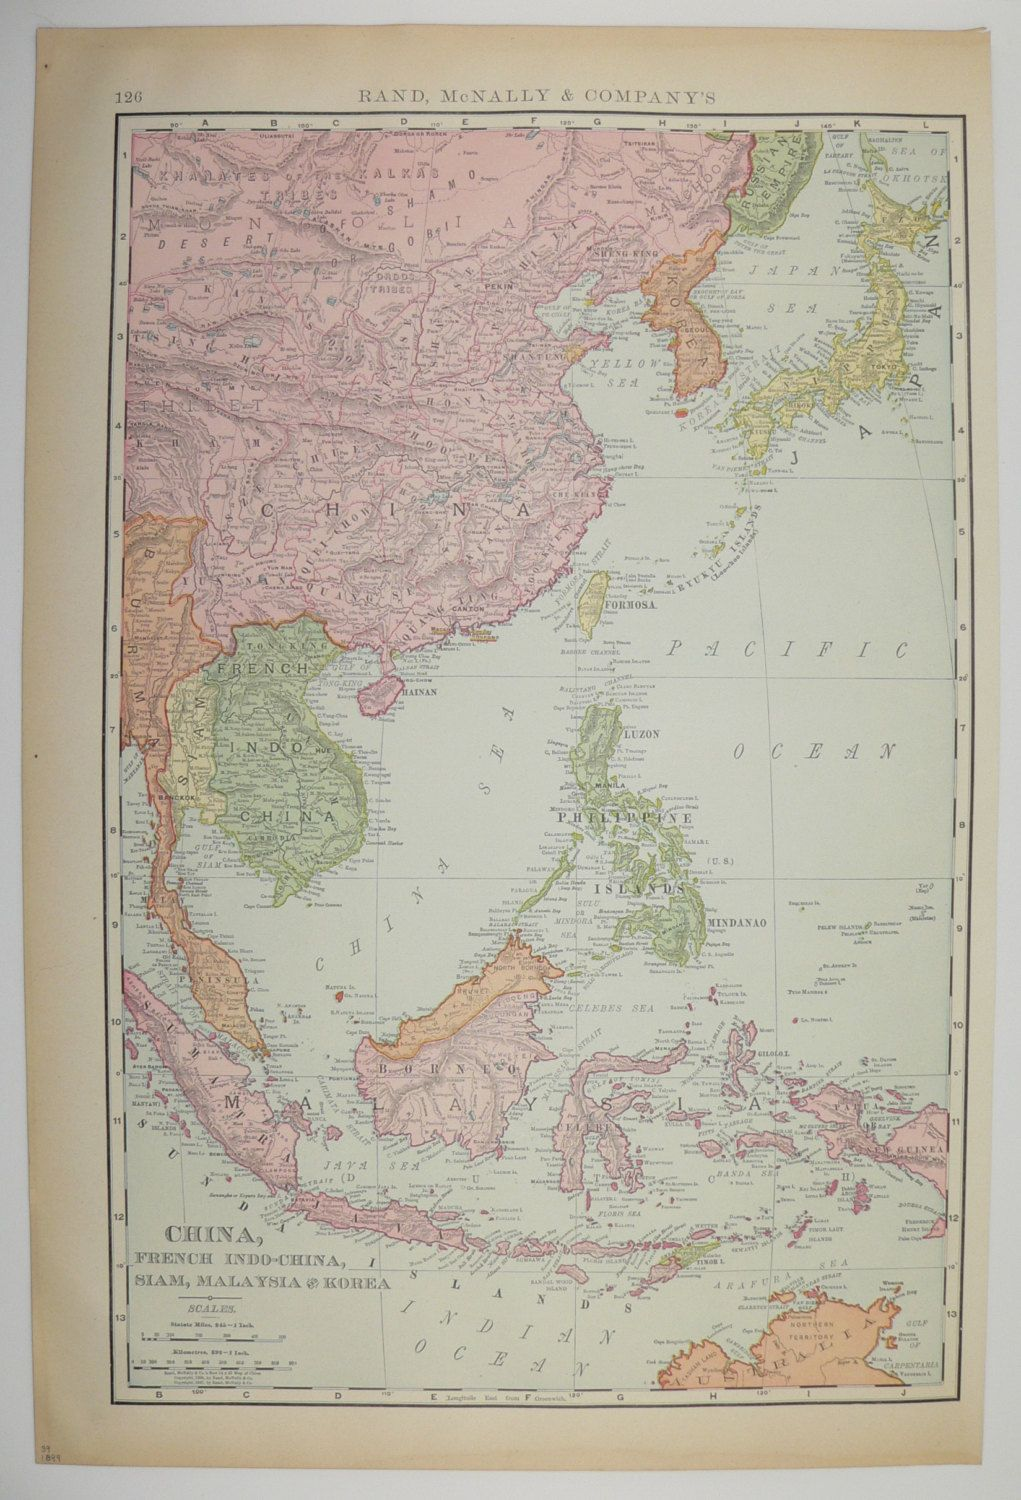 Old china malaysia korea map antique siam vintage 1899 japan taiwan old china malaysia korea map antique siam vintage 1899 japan taiwan philippines borneo java sumatra travel gumiabroncs Images